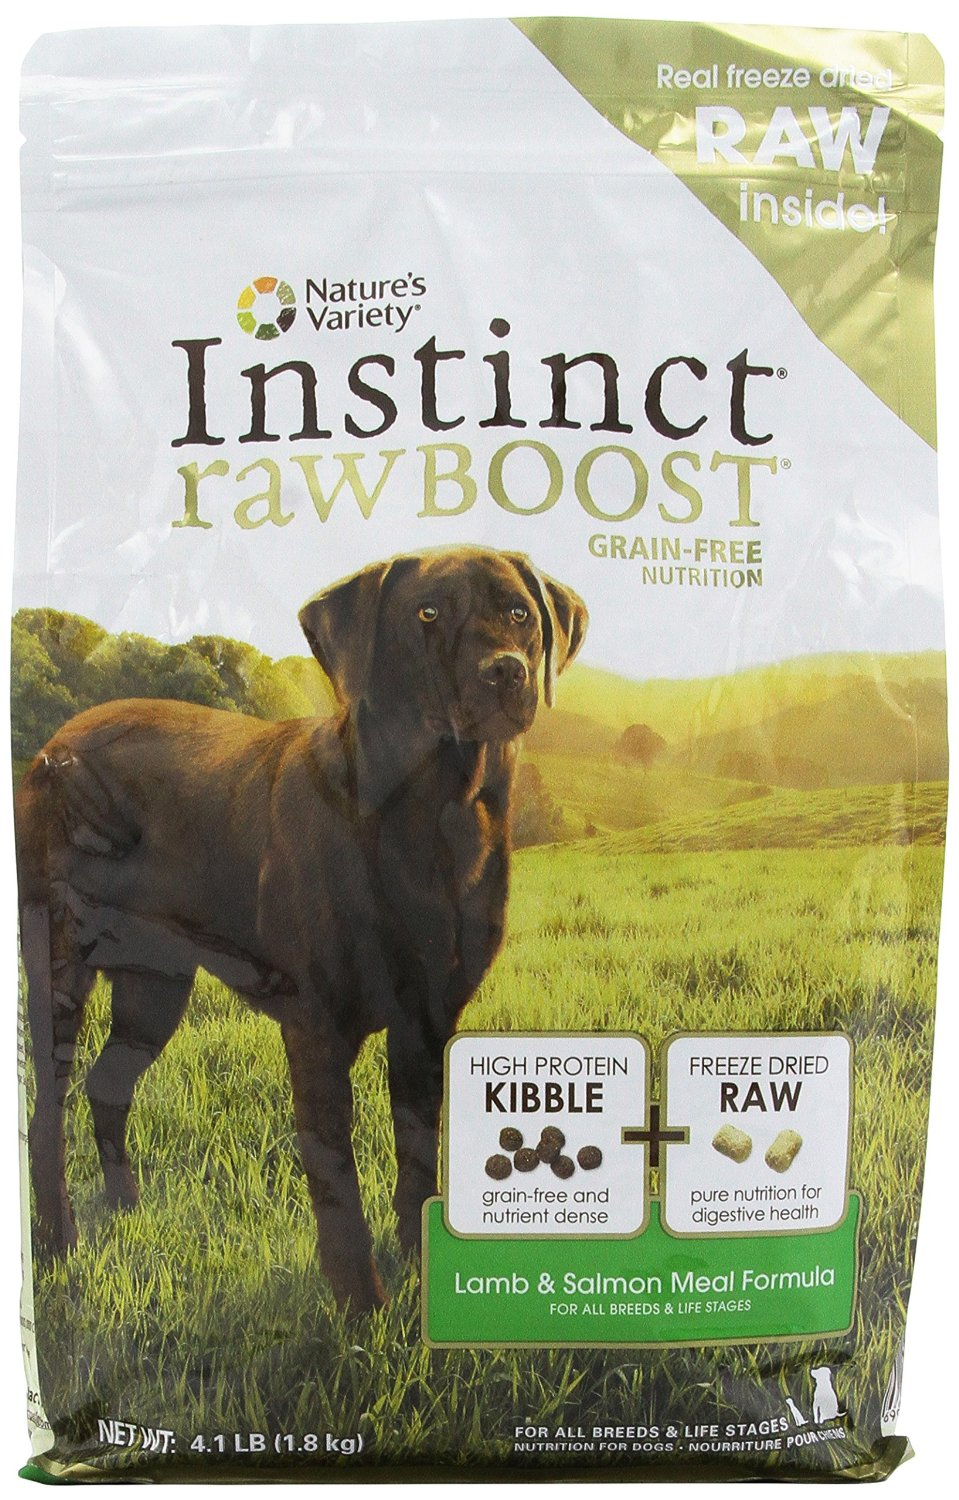 Nature's Variety Instinct Raw Boost Kibble for Dogs